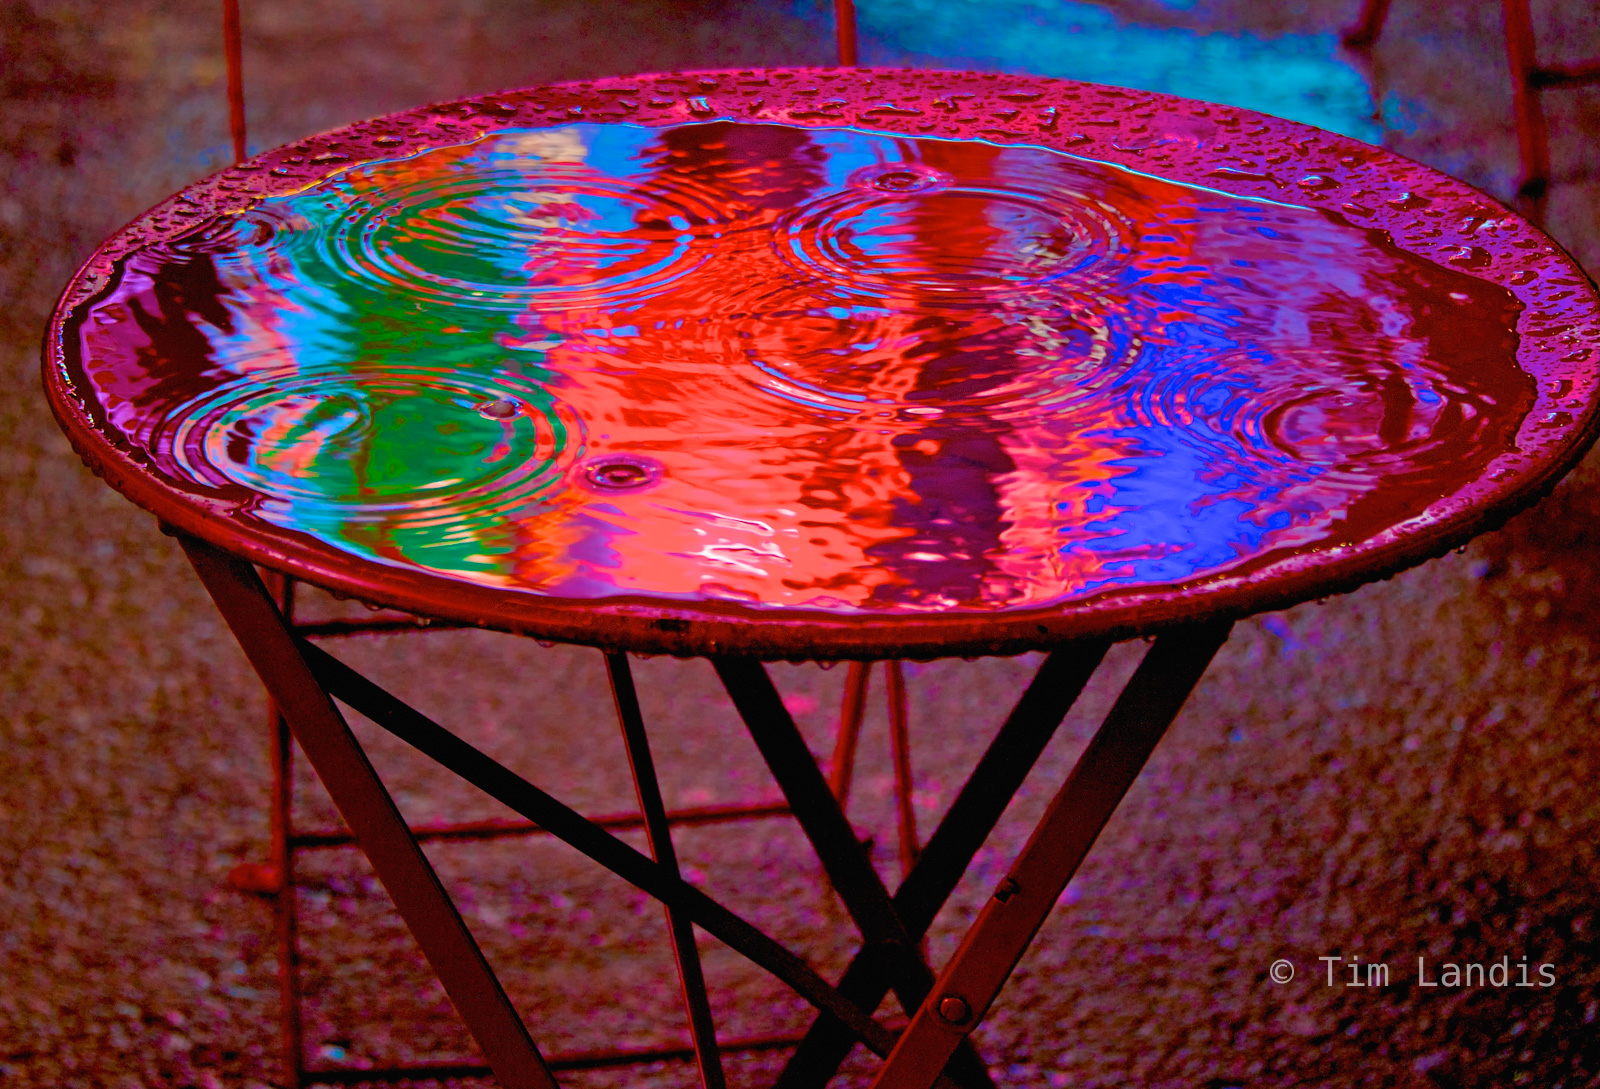 Ny, Pure liquid color, Times Square, distilled color, inter-dimensional table, pool, radiant, reflections, stargate, technicolor table, time portal, photo